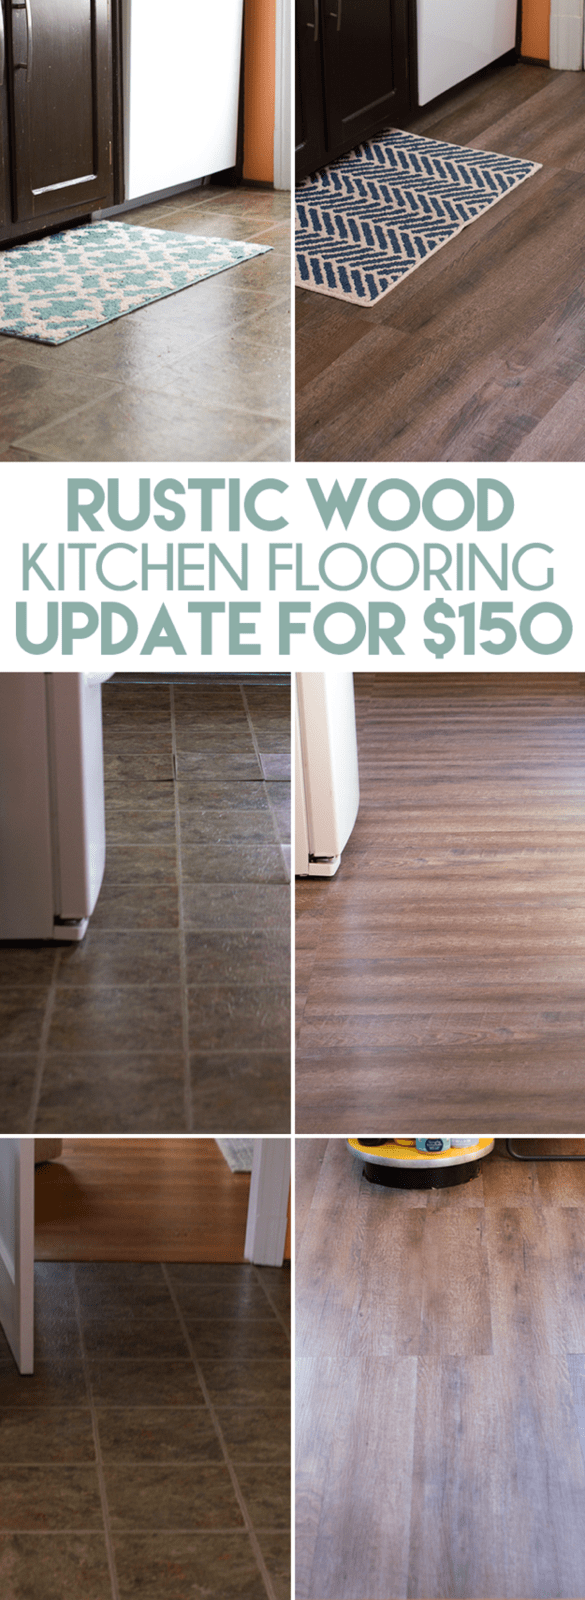 inexpensive rustic wood kitchen floors